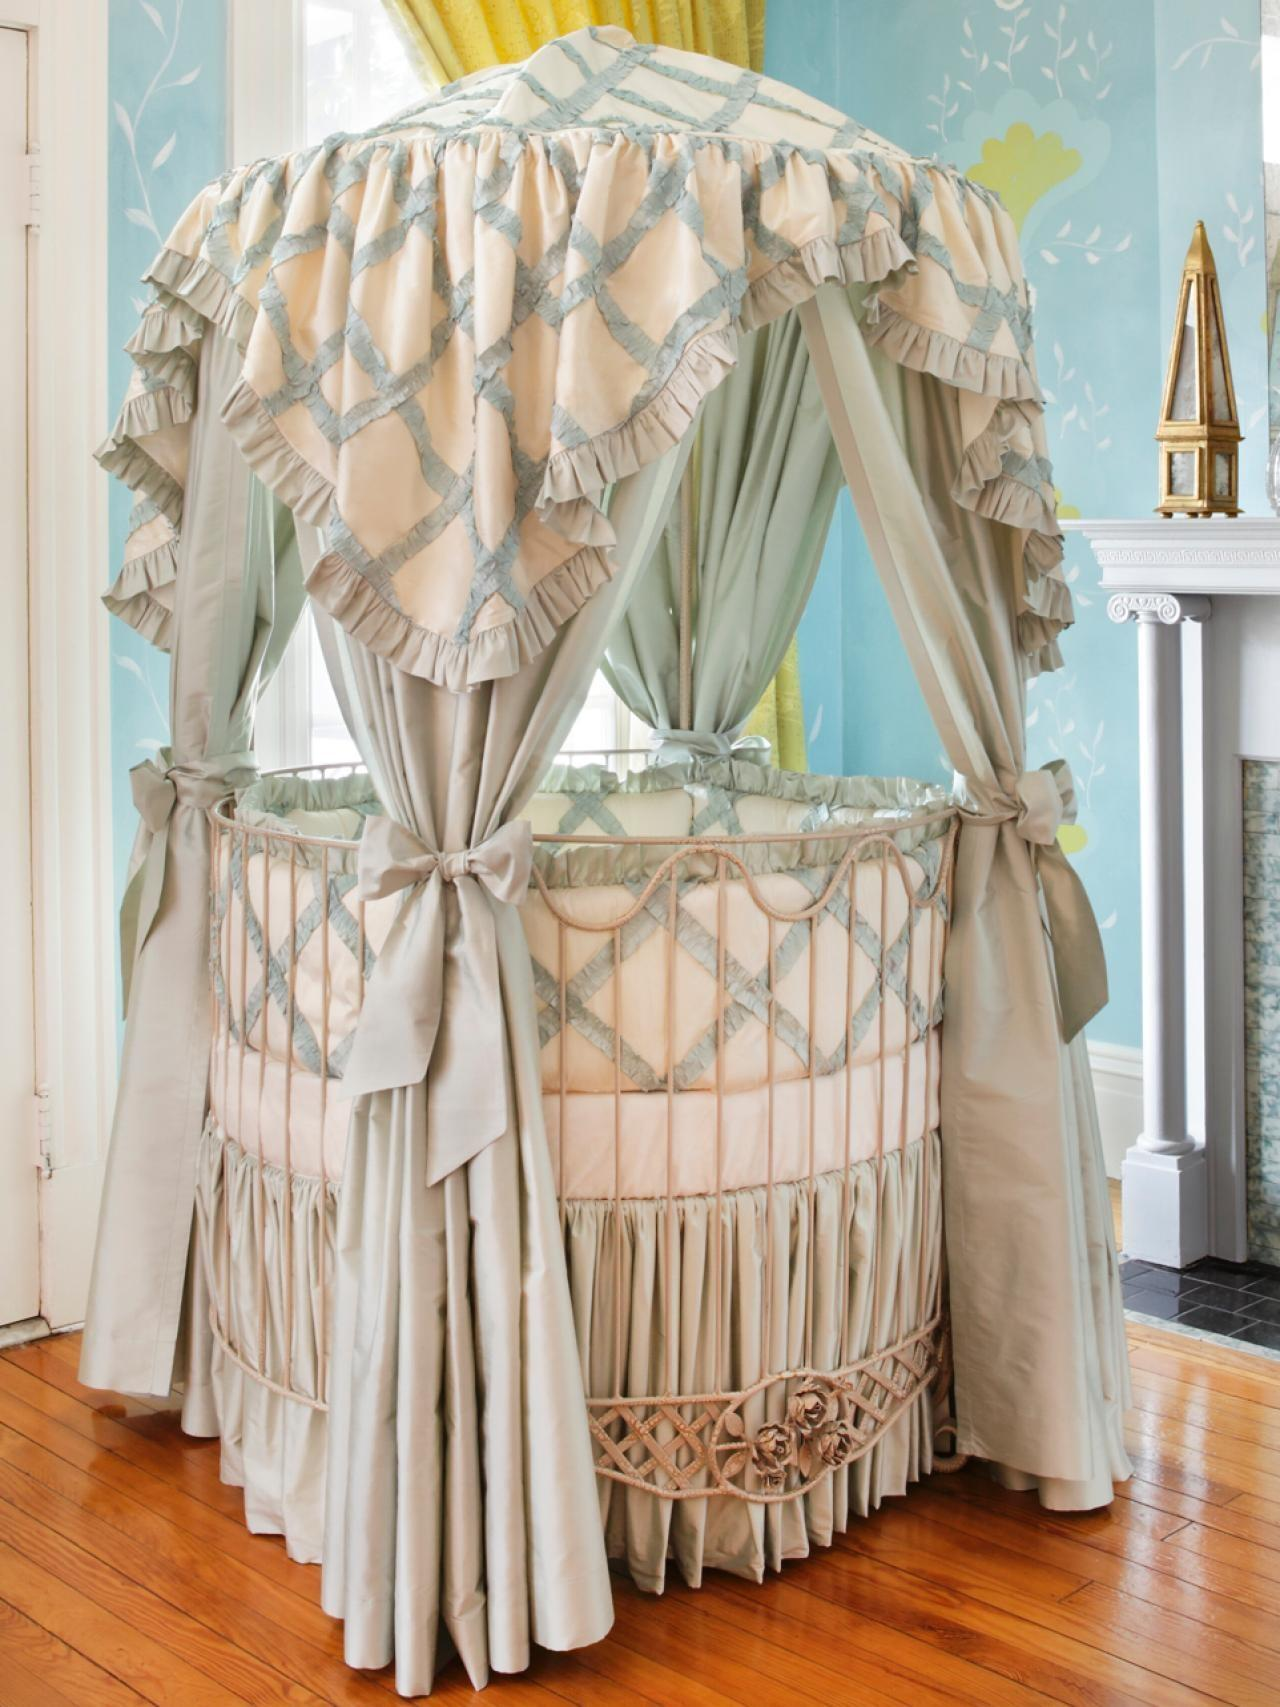 Cool Cribs Every Style Kids Room Ideas